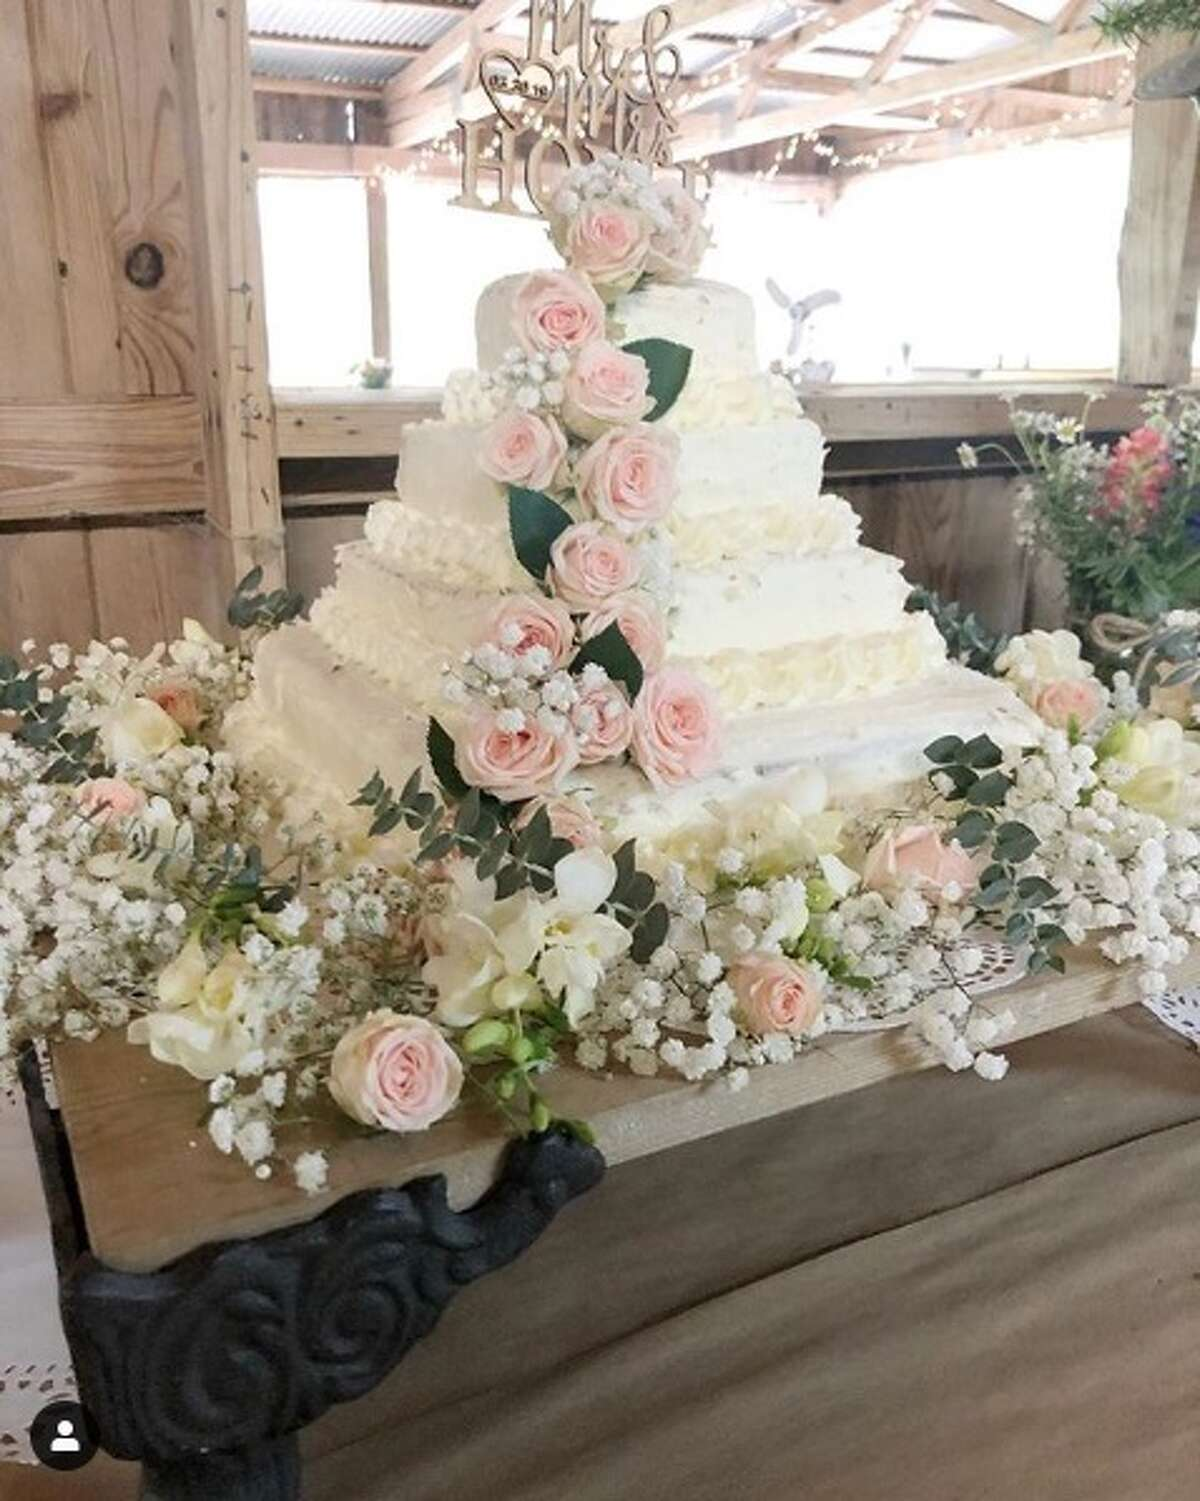 @cottagefarmhouse posted a photo of a DIY wedding cake that only cost a bride and groom $50.